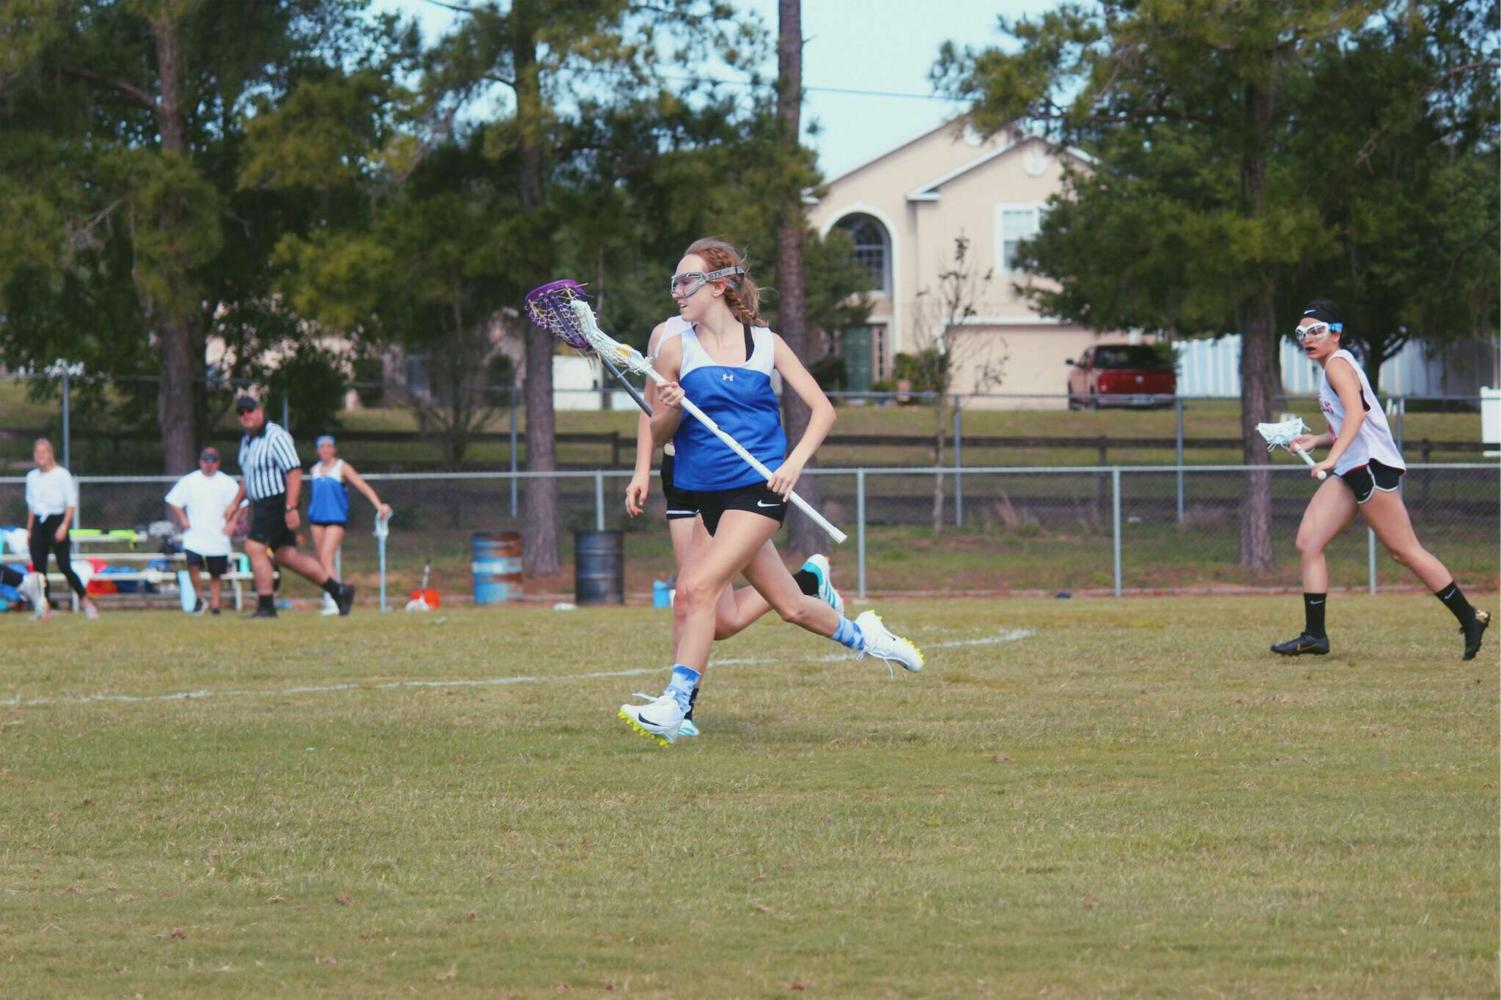 Oliva Severance, 9th grade, plays in her lacrosse game.